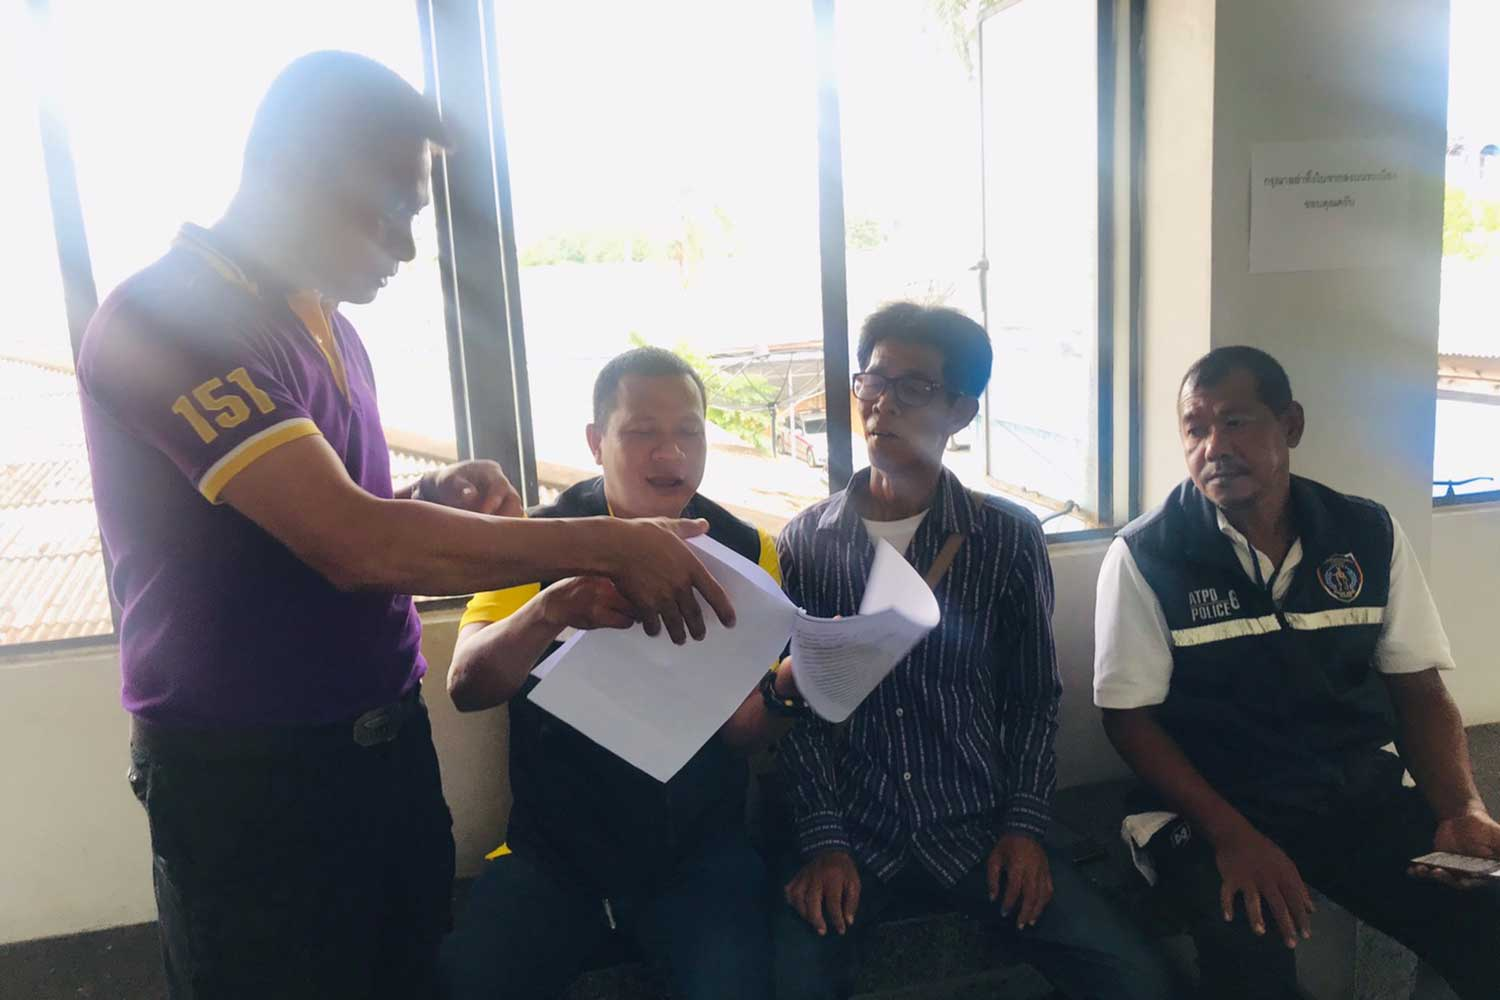 Investigators question Kosol Kliewklai (wearing glasses) after taking him into custody on a charge of raping his friend's 10-year-old daughter. (Supplied photo via Wassayos Ngamkham)